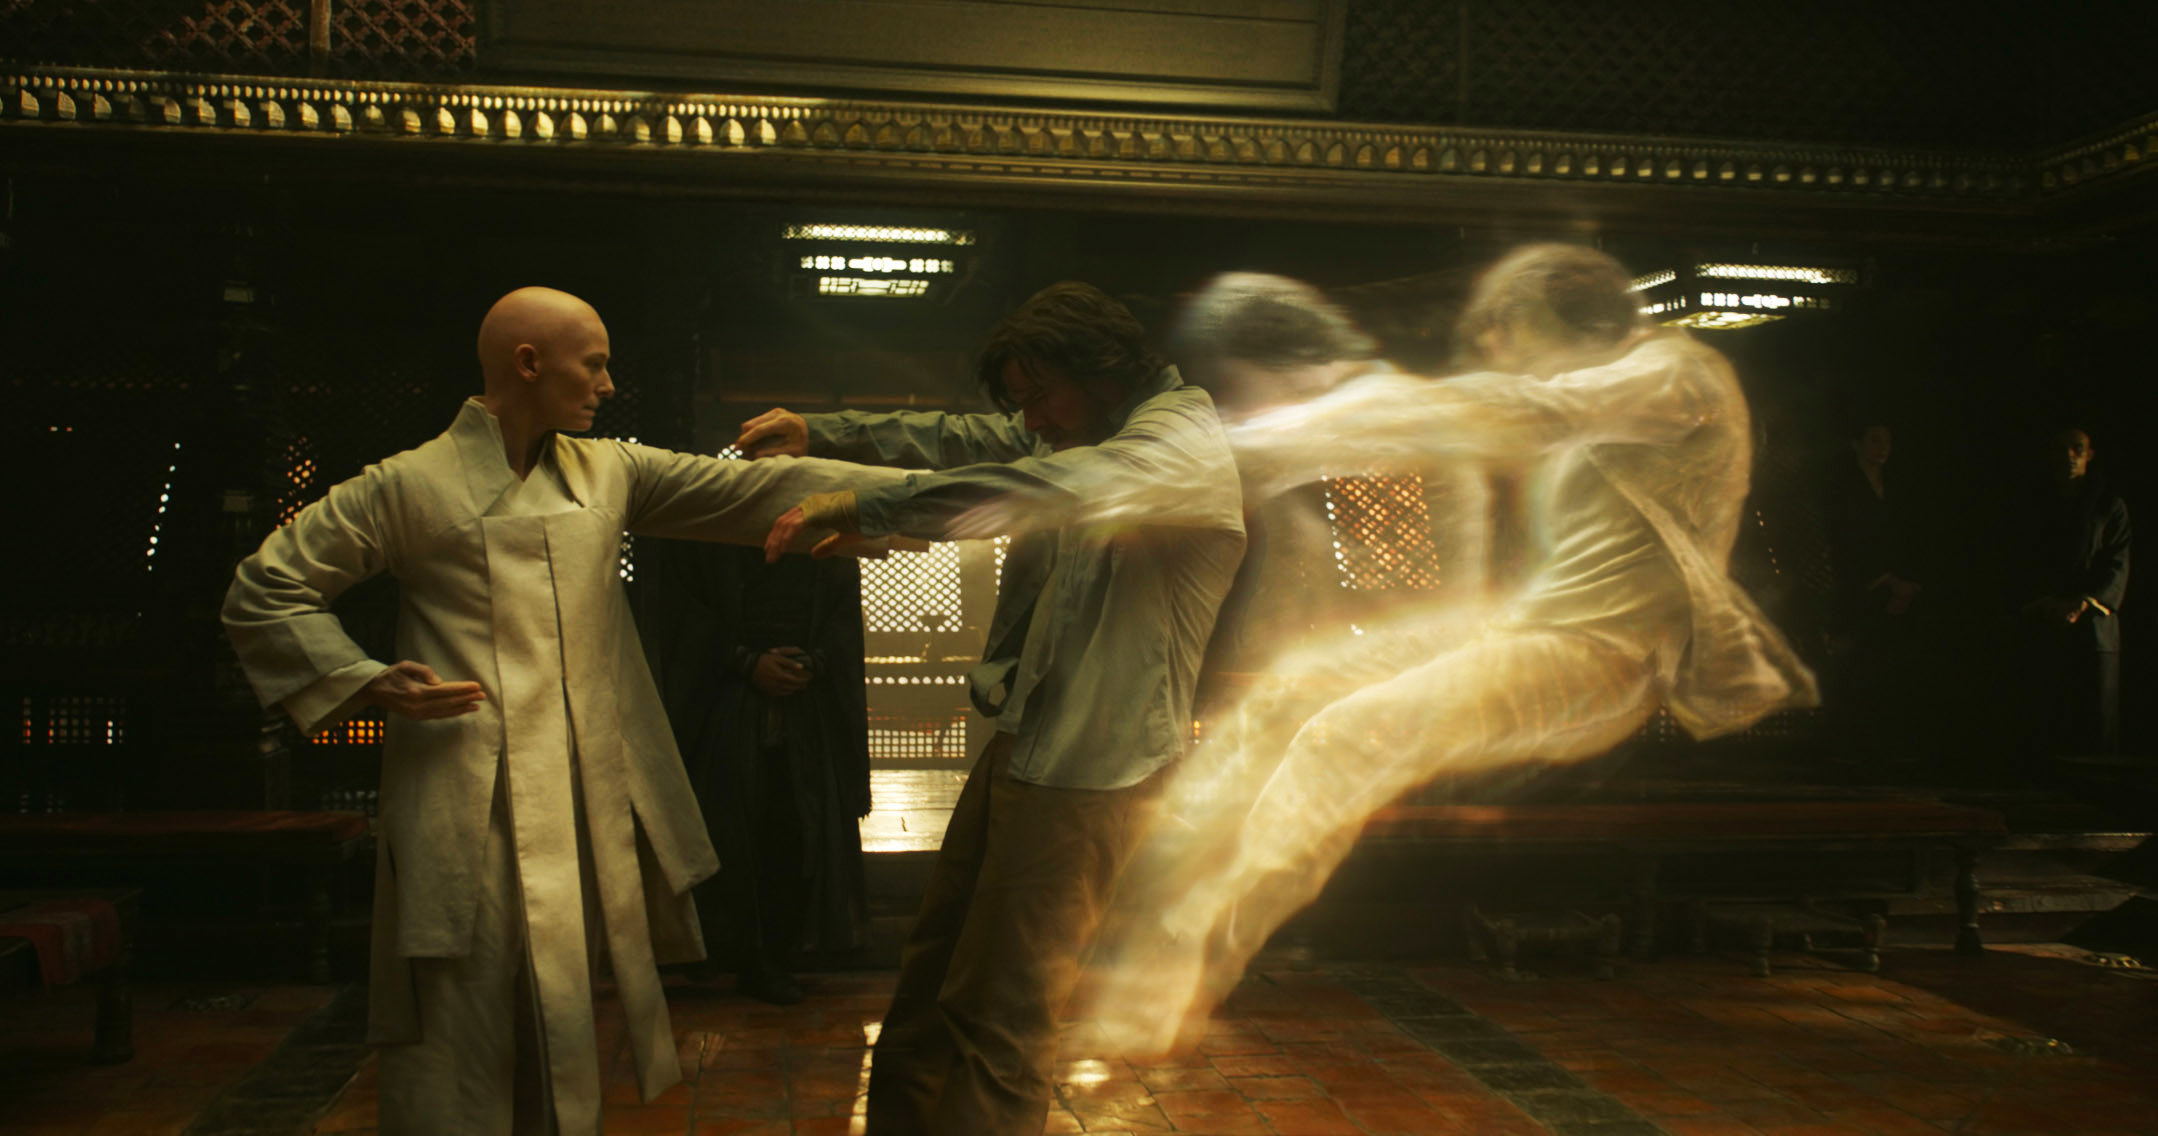 The Ancient One pushing Dr. Strange's astral form out of his physical form